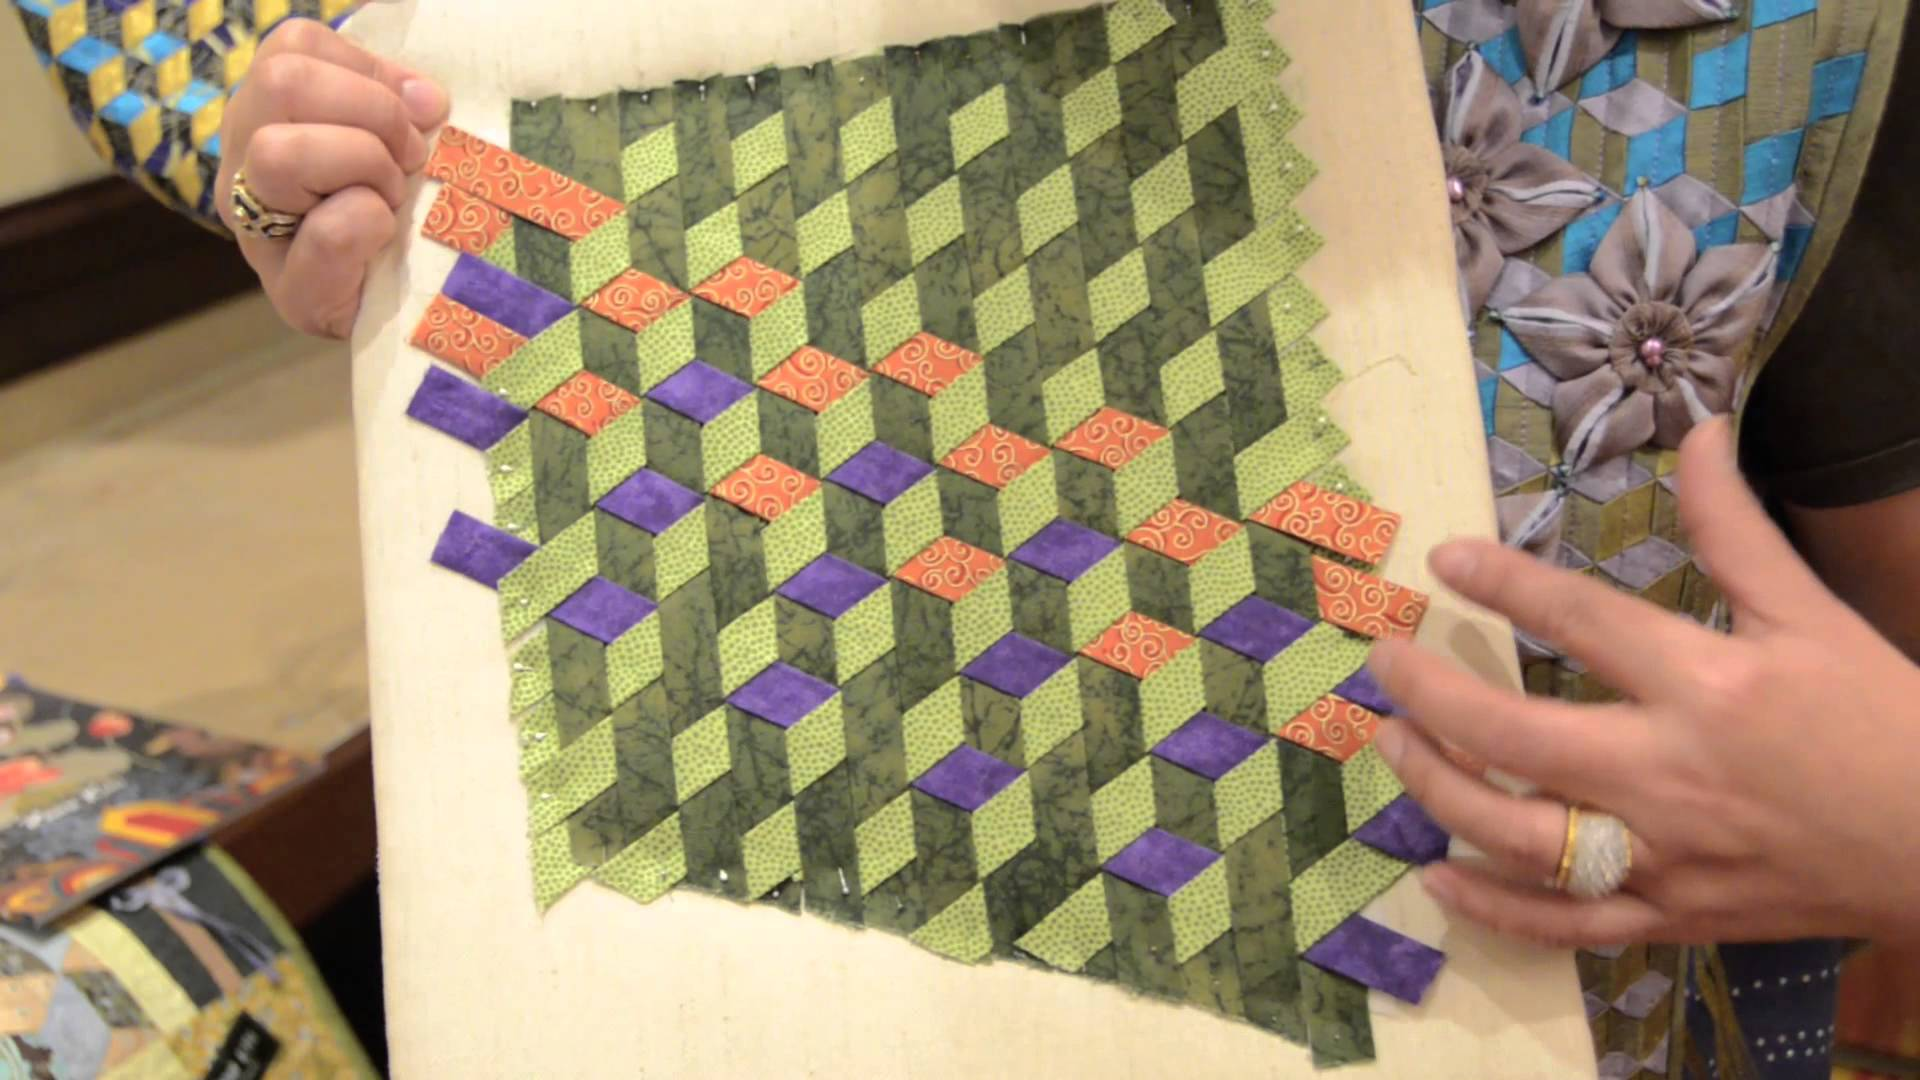 Quilt Patterns Using Strips Of Fabric : This is Quilting? I think So? All I know is it s really FUN! Weaving Fabric Strips! Keeping u ...